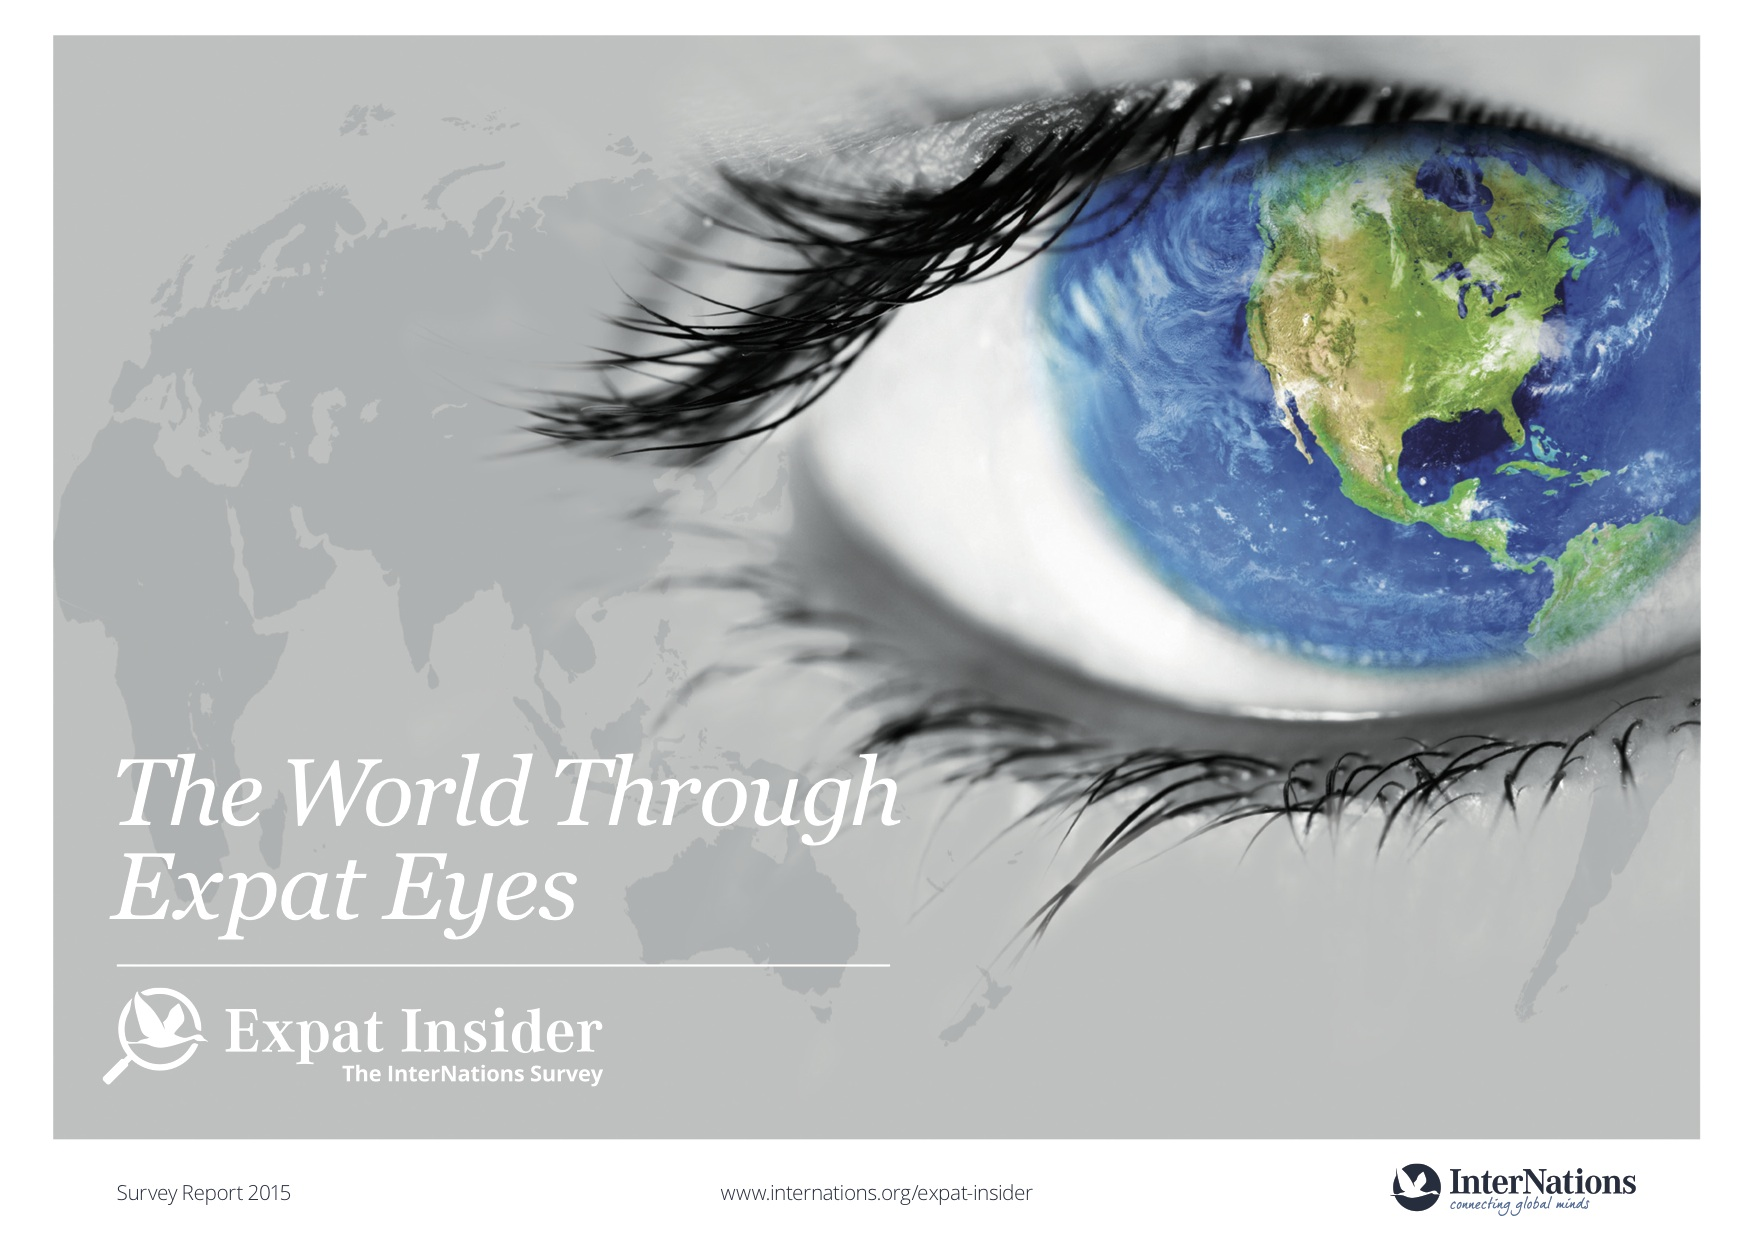 expat_insider_2015_the_internations_survey